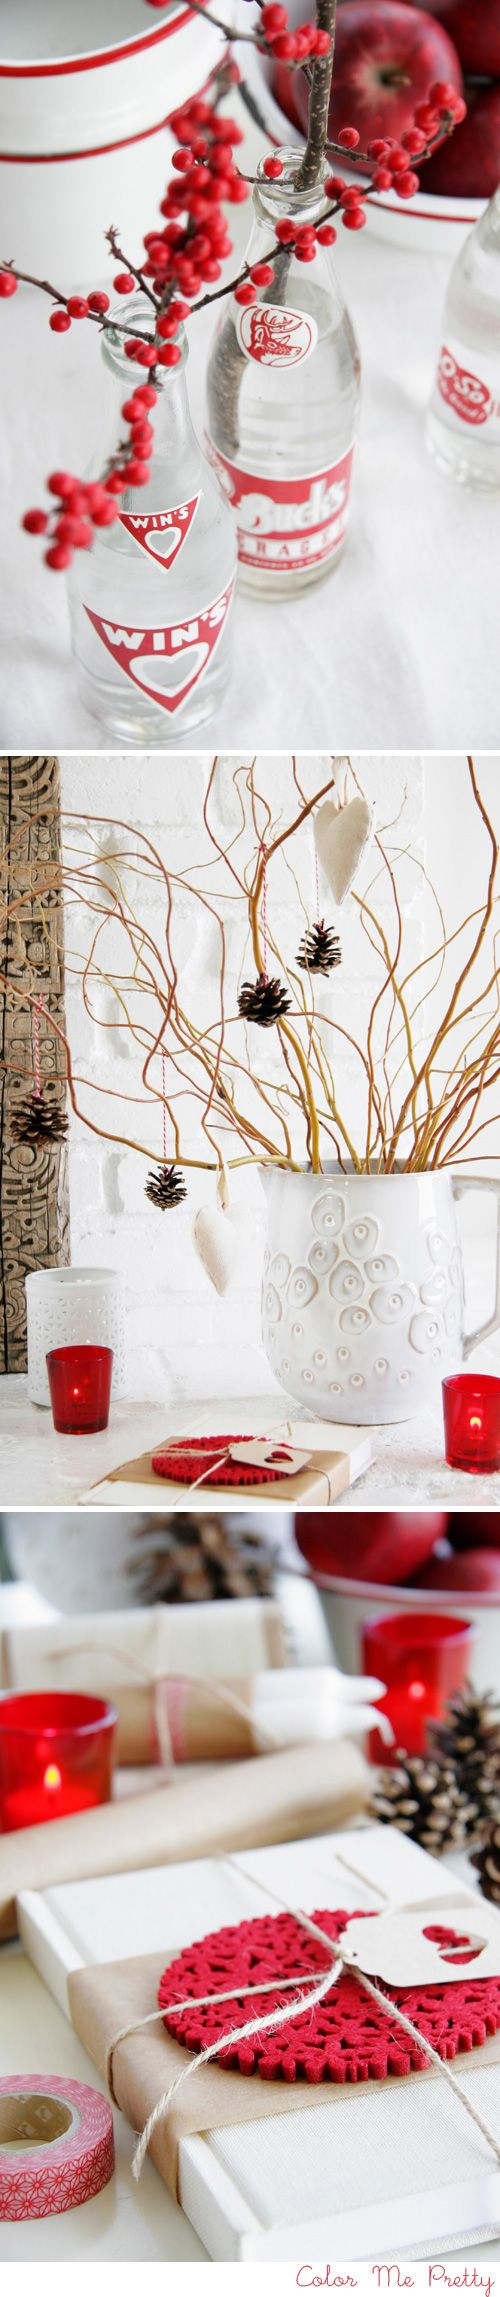 [branches + pinecones] lovely styling